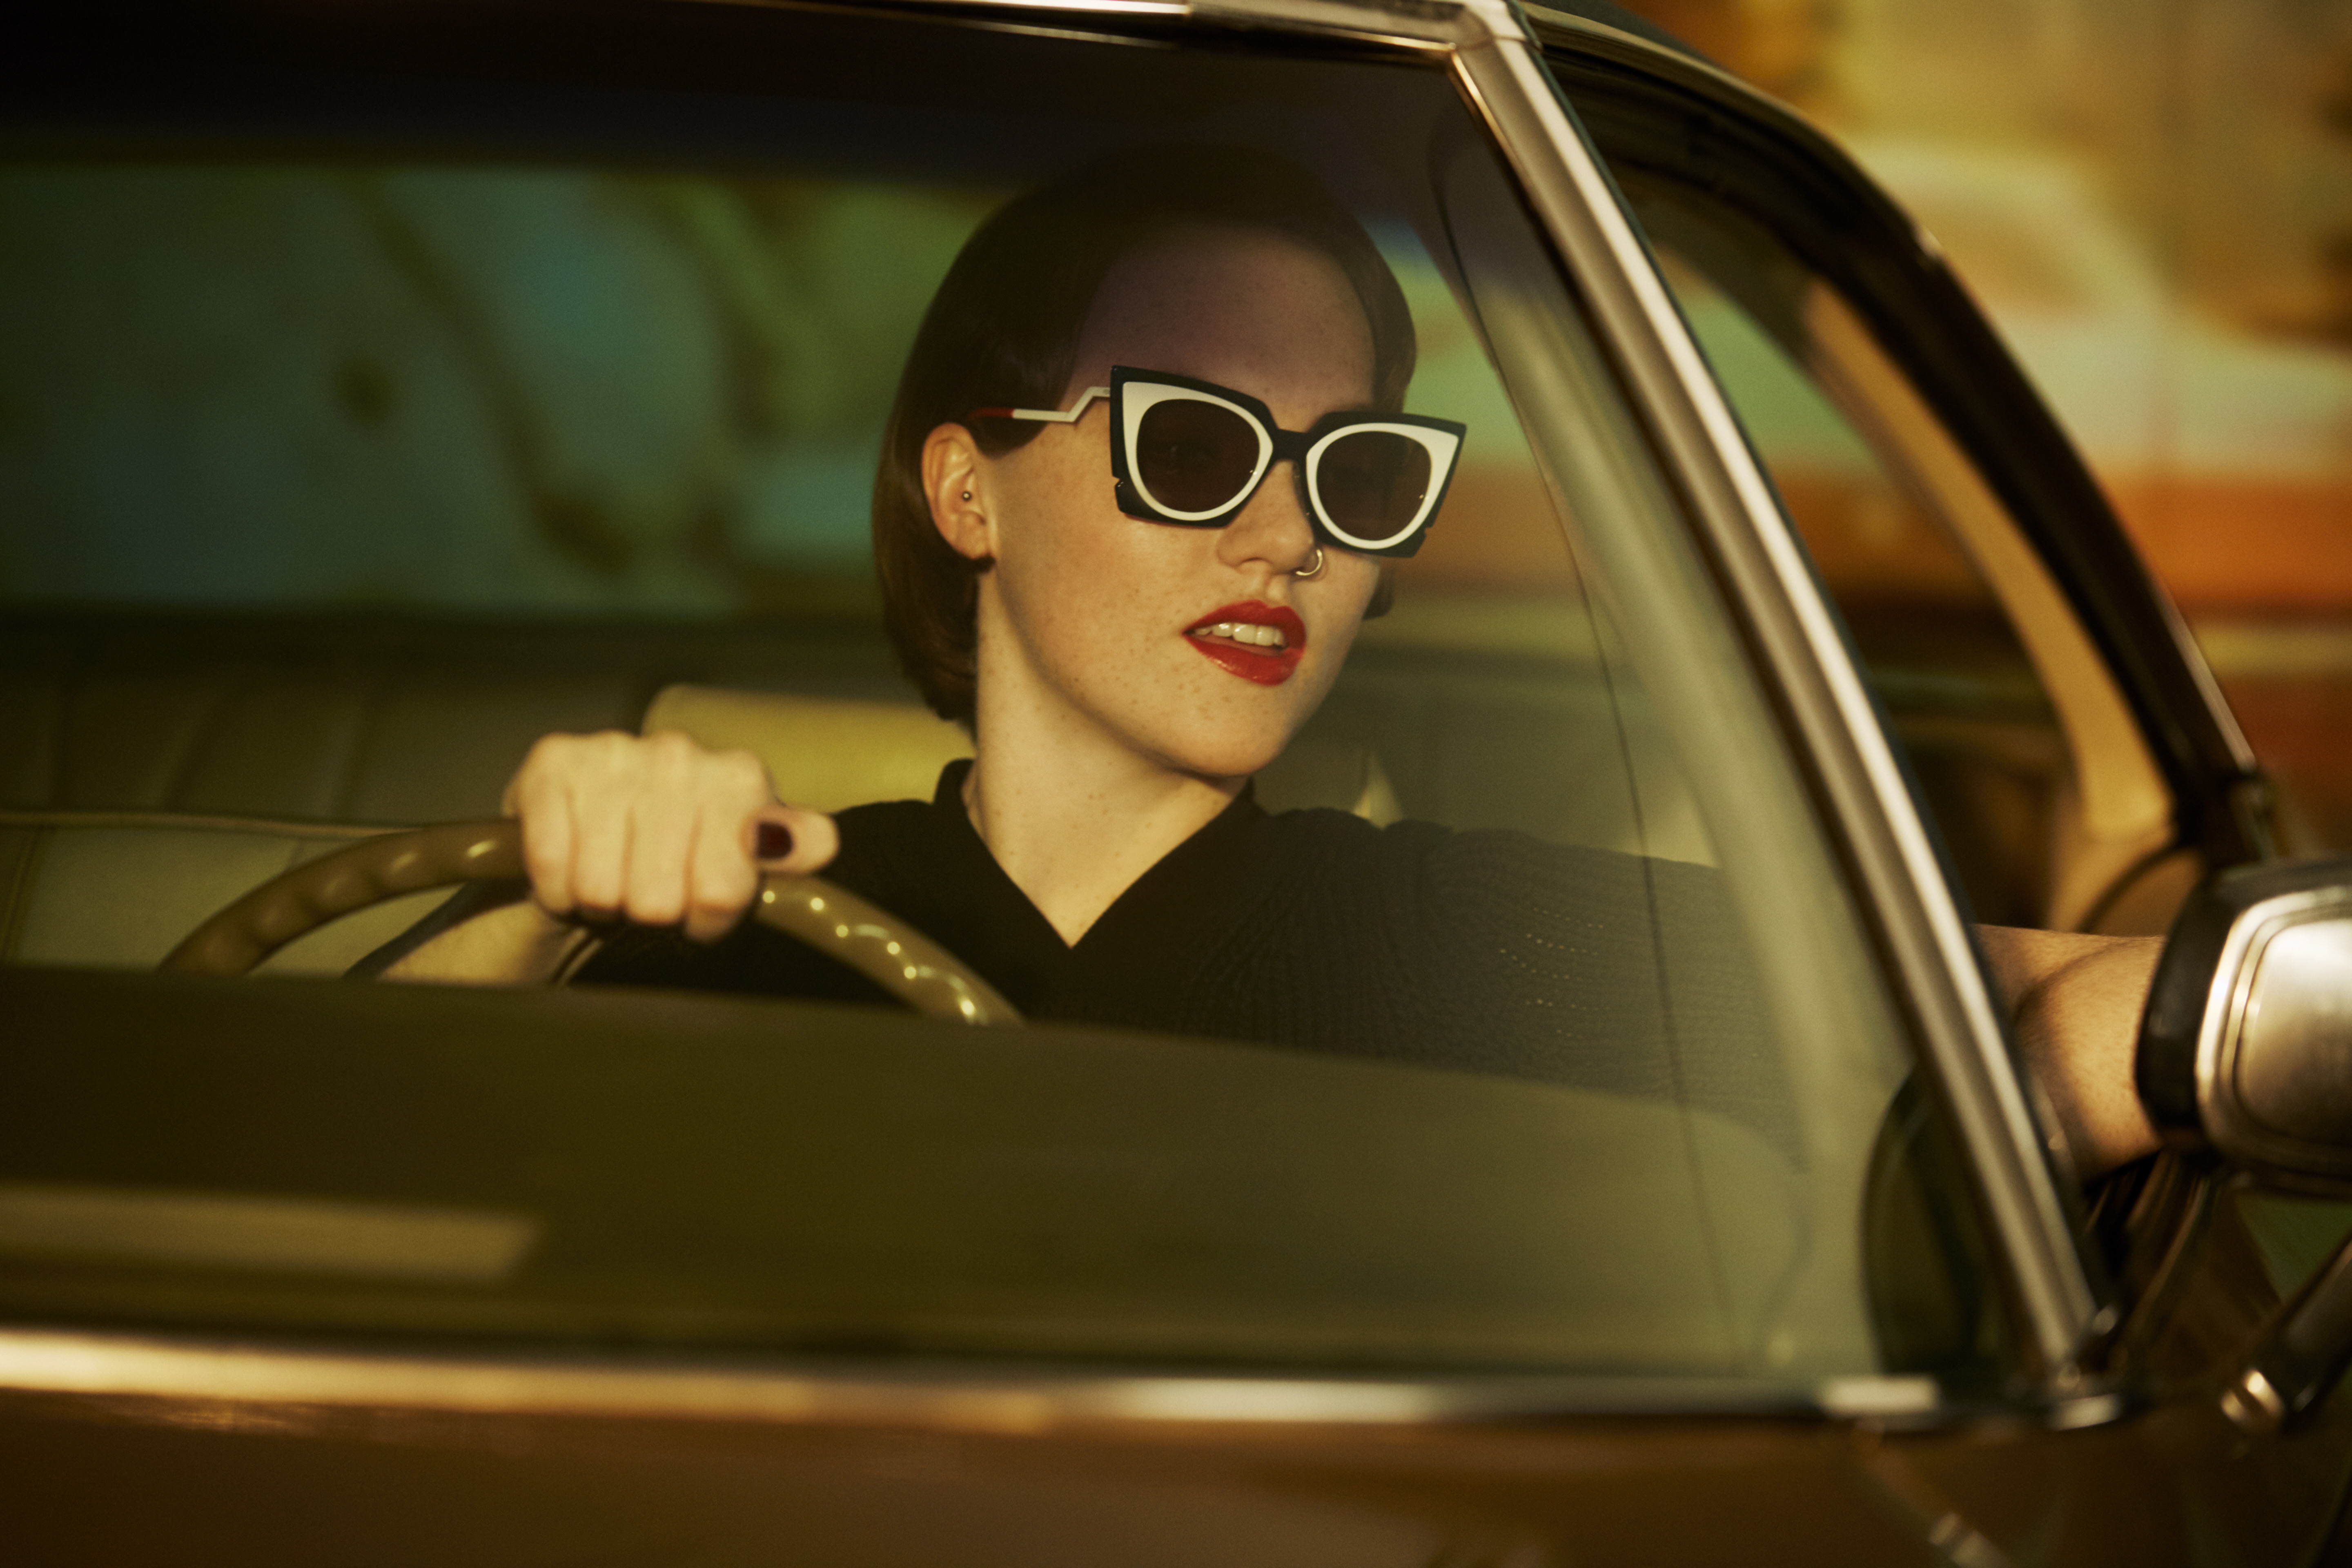 03_FENDI Ochidea Sunglasses_Bad Dreams Video featuring Chlîe Howl